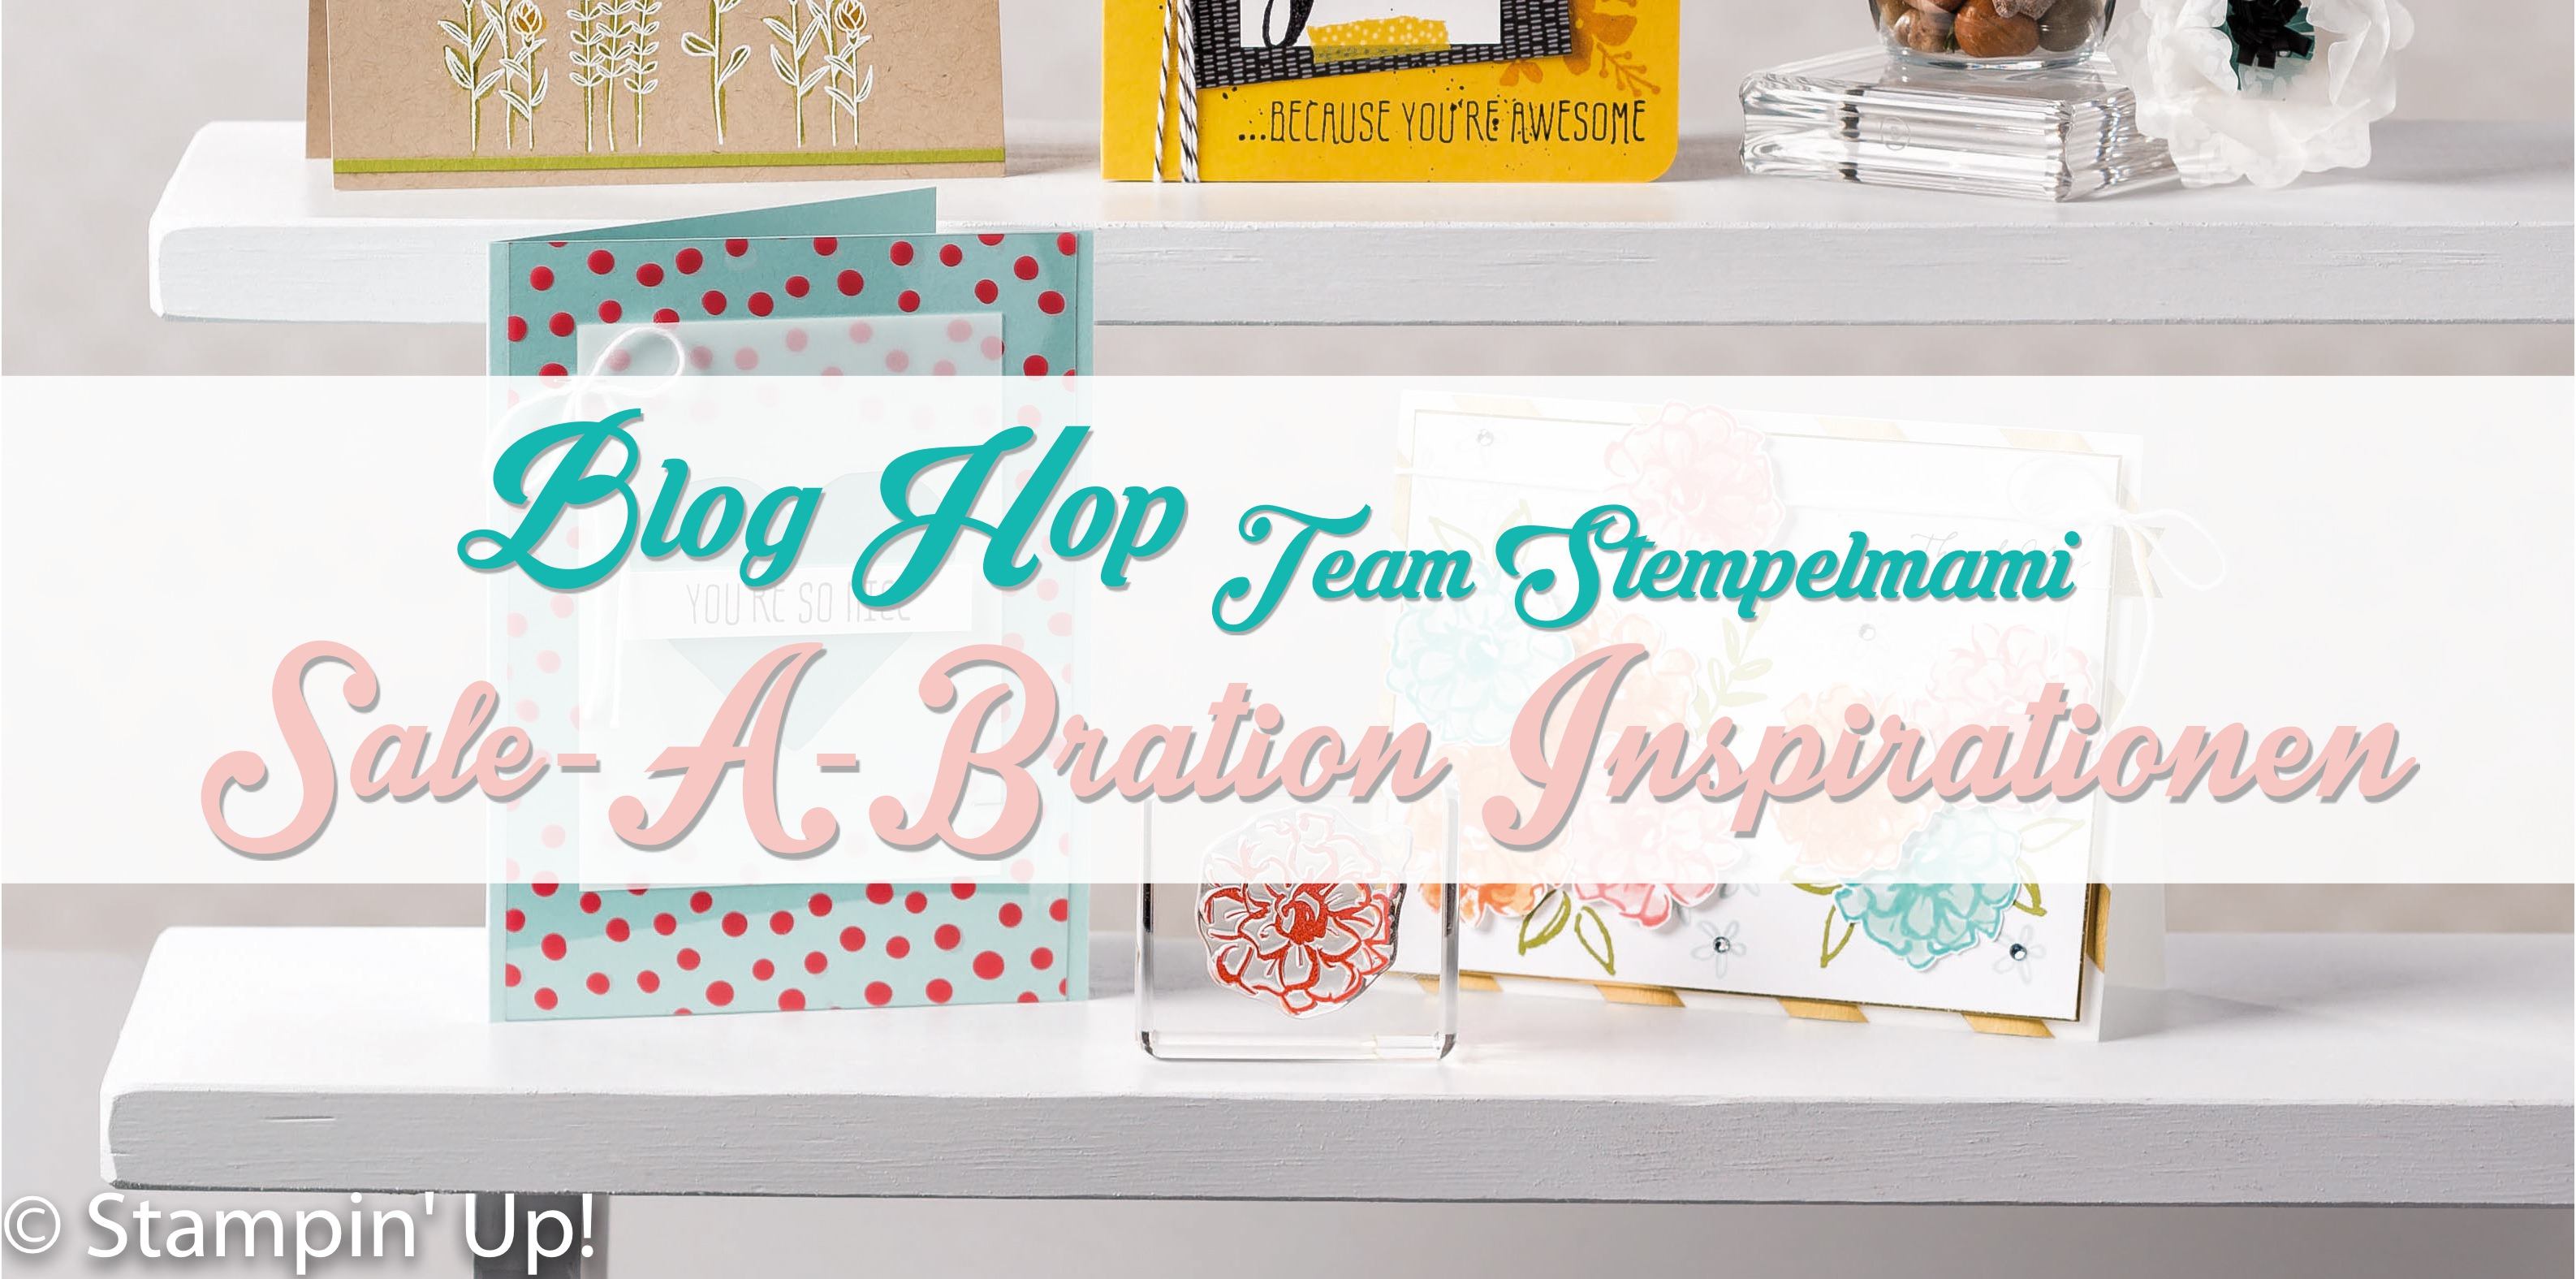 Stampin Up! Zierschachtel – Blog Hop Team Stempelmami Sale a Bration Inspirationen